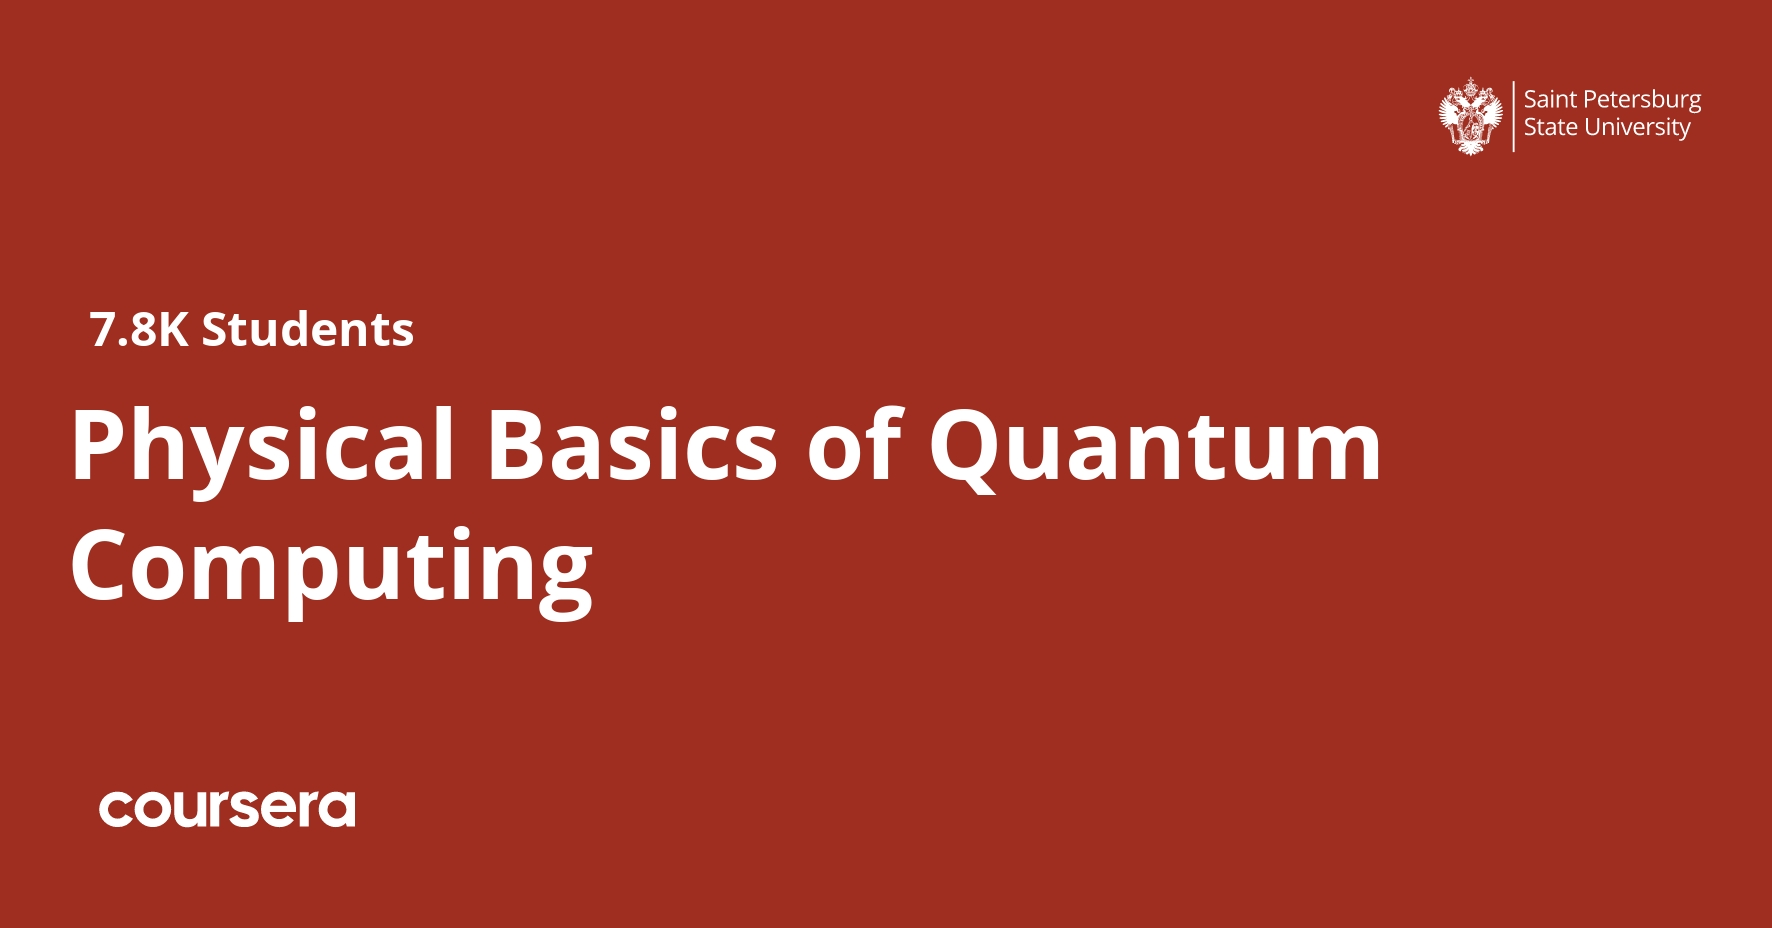 Physical Basics of Quantum Computing (Coursera)